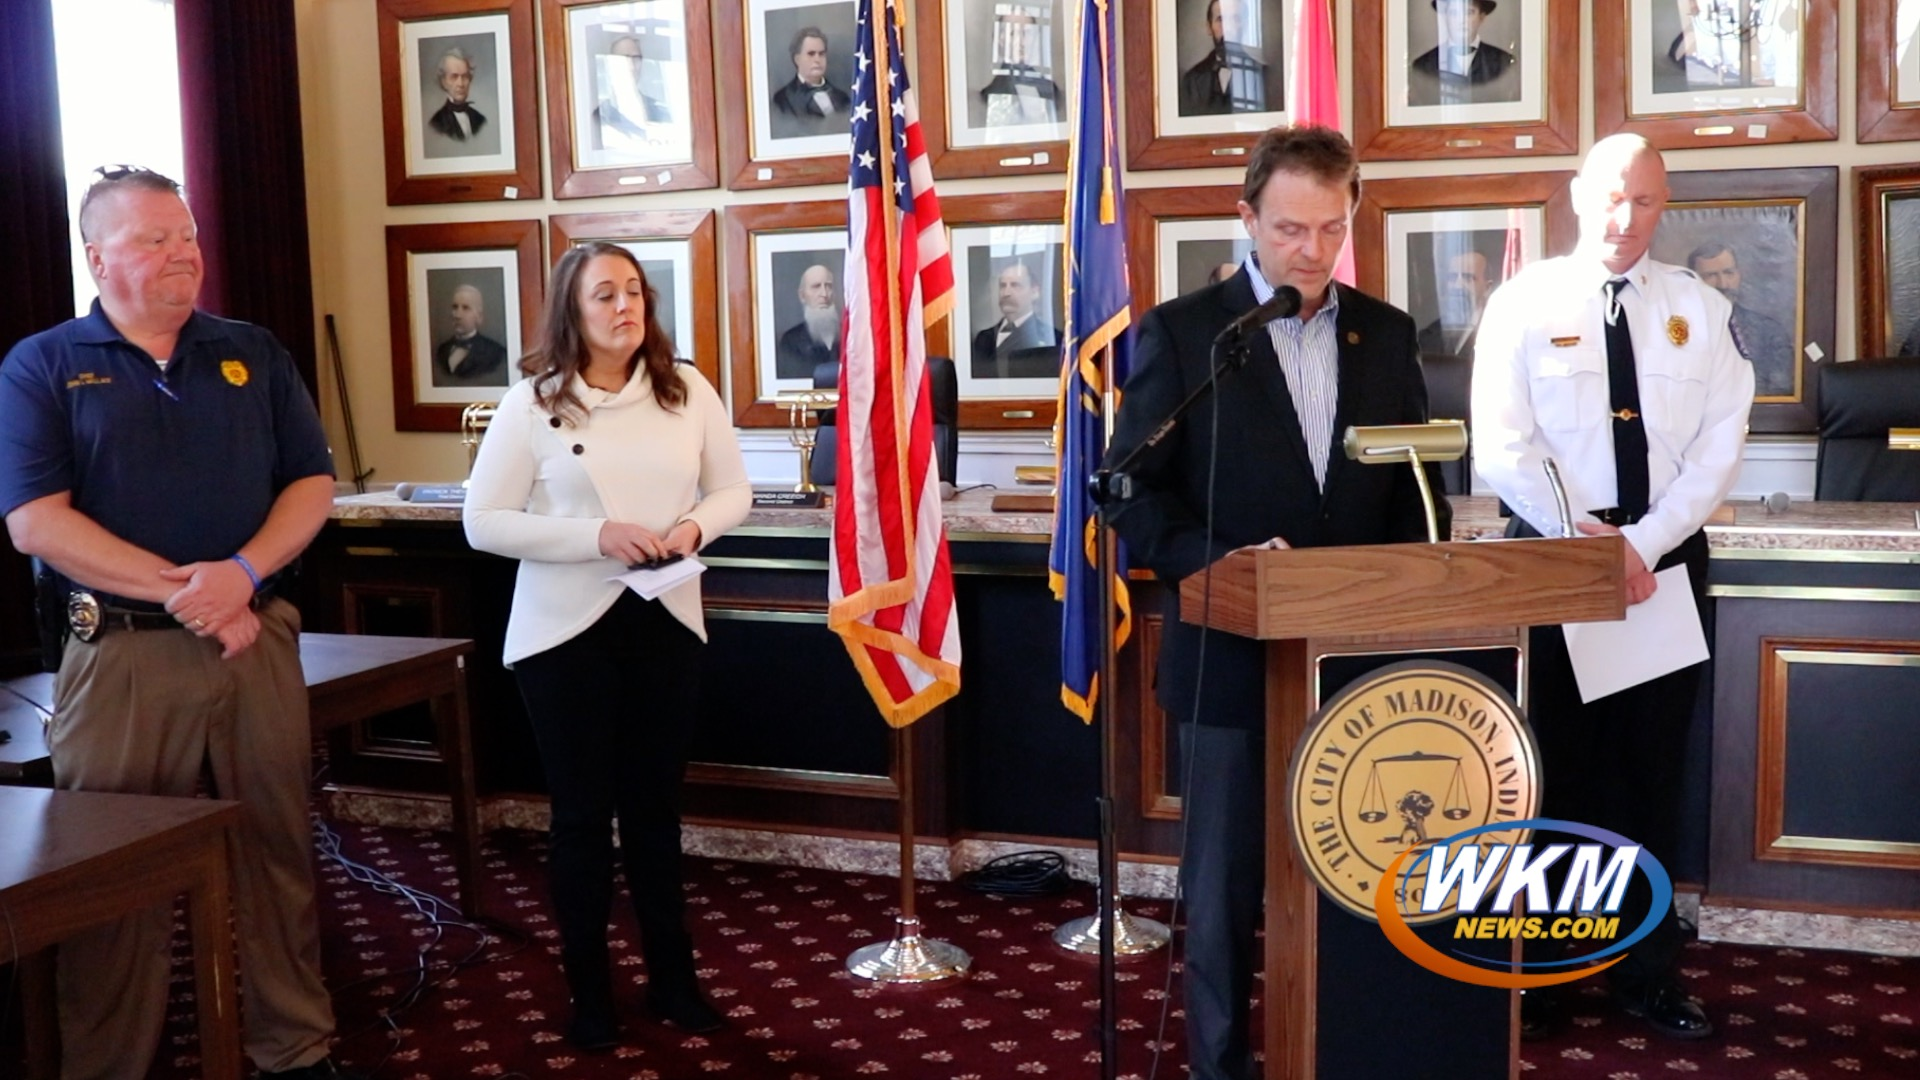 City Officials Address Stay-At-Home Order; Social Distancing Importance